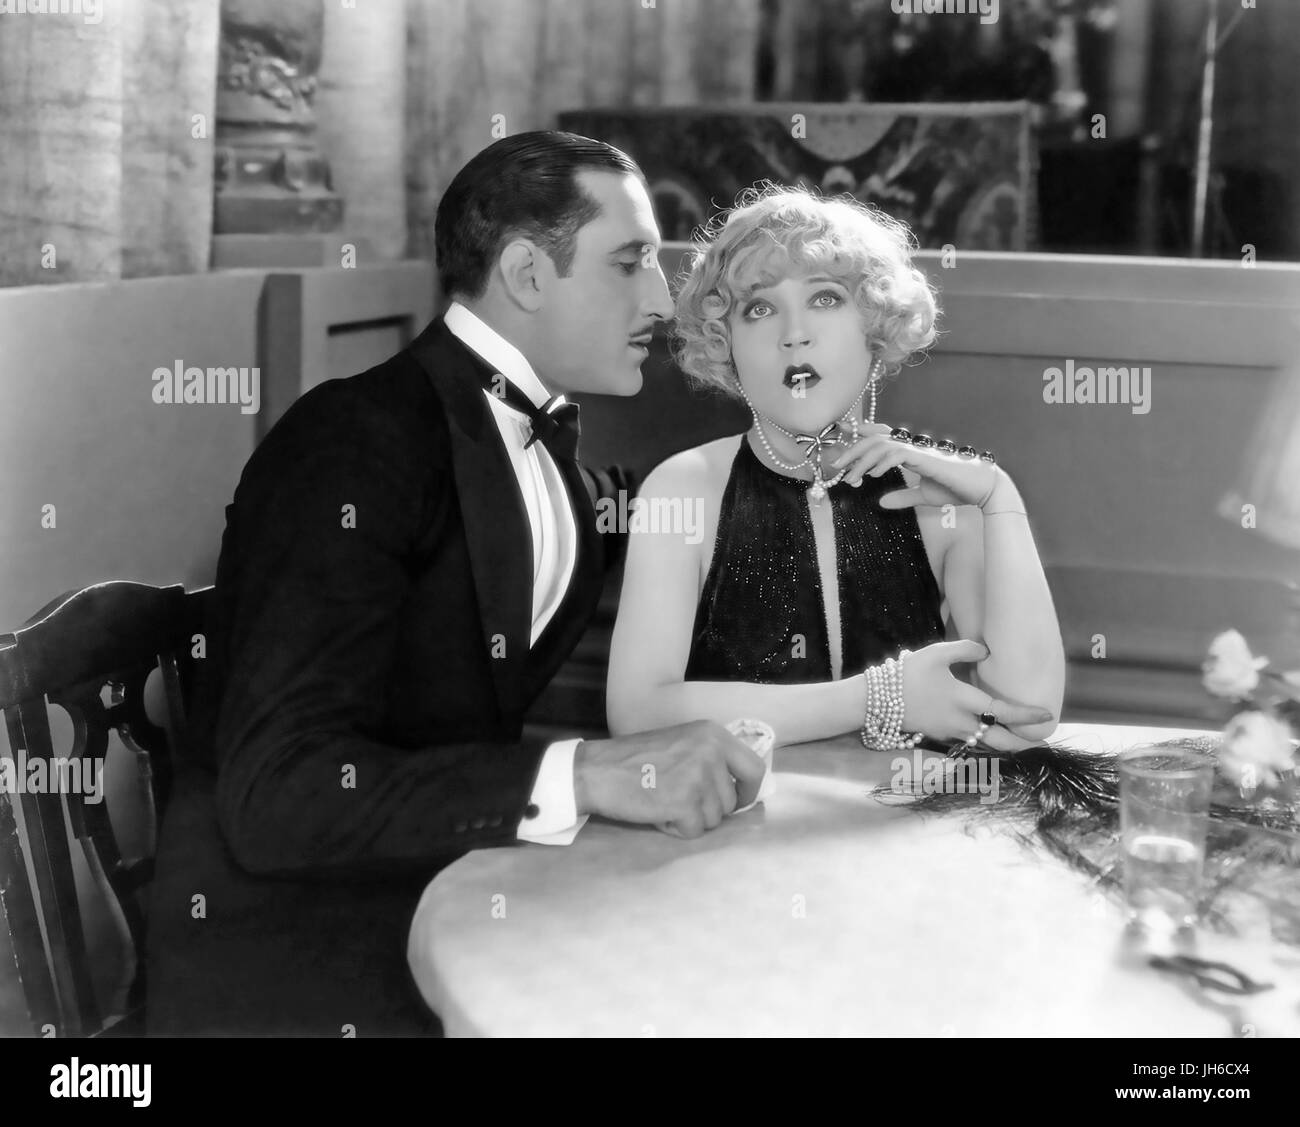 THE MASKED BRIDE 1925 MGM silent film with Mae Murray and Basil Rathbone - Stock Image